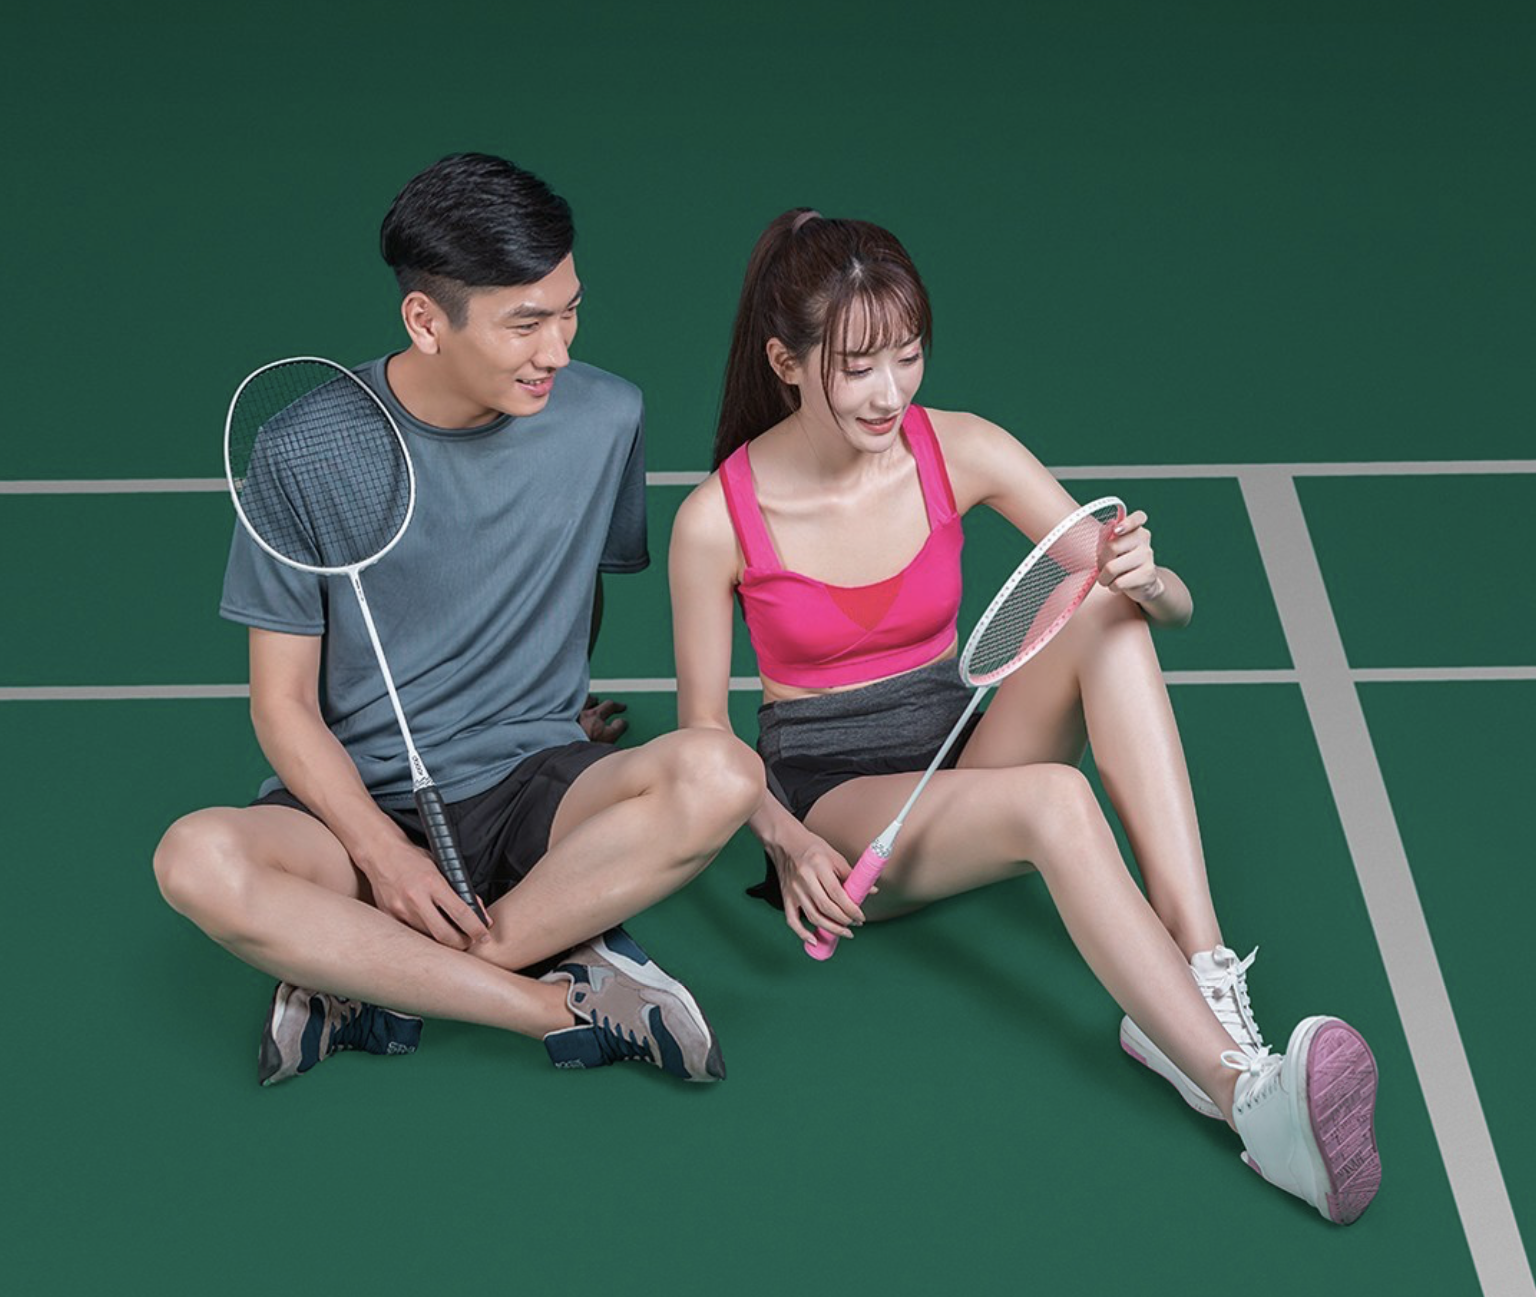 Badminton racket from Xiaomi and Dooot